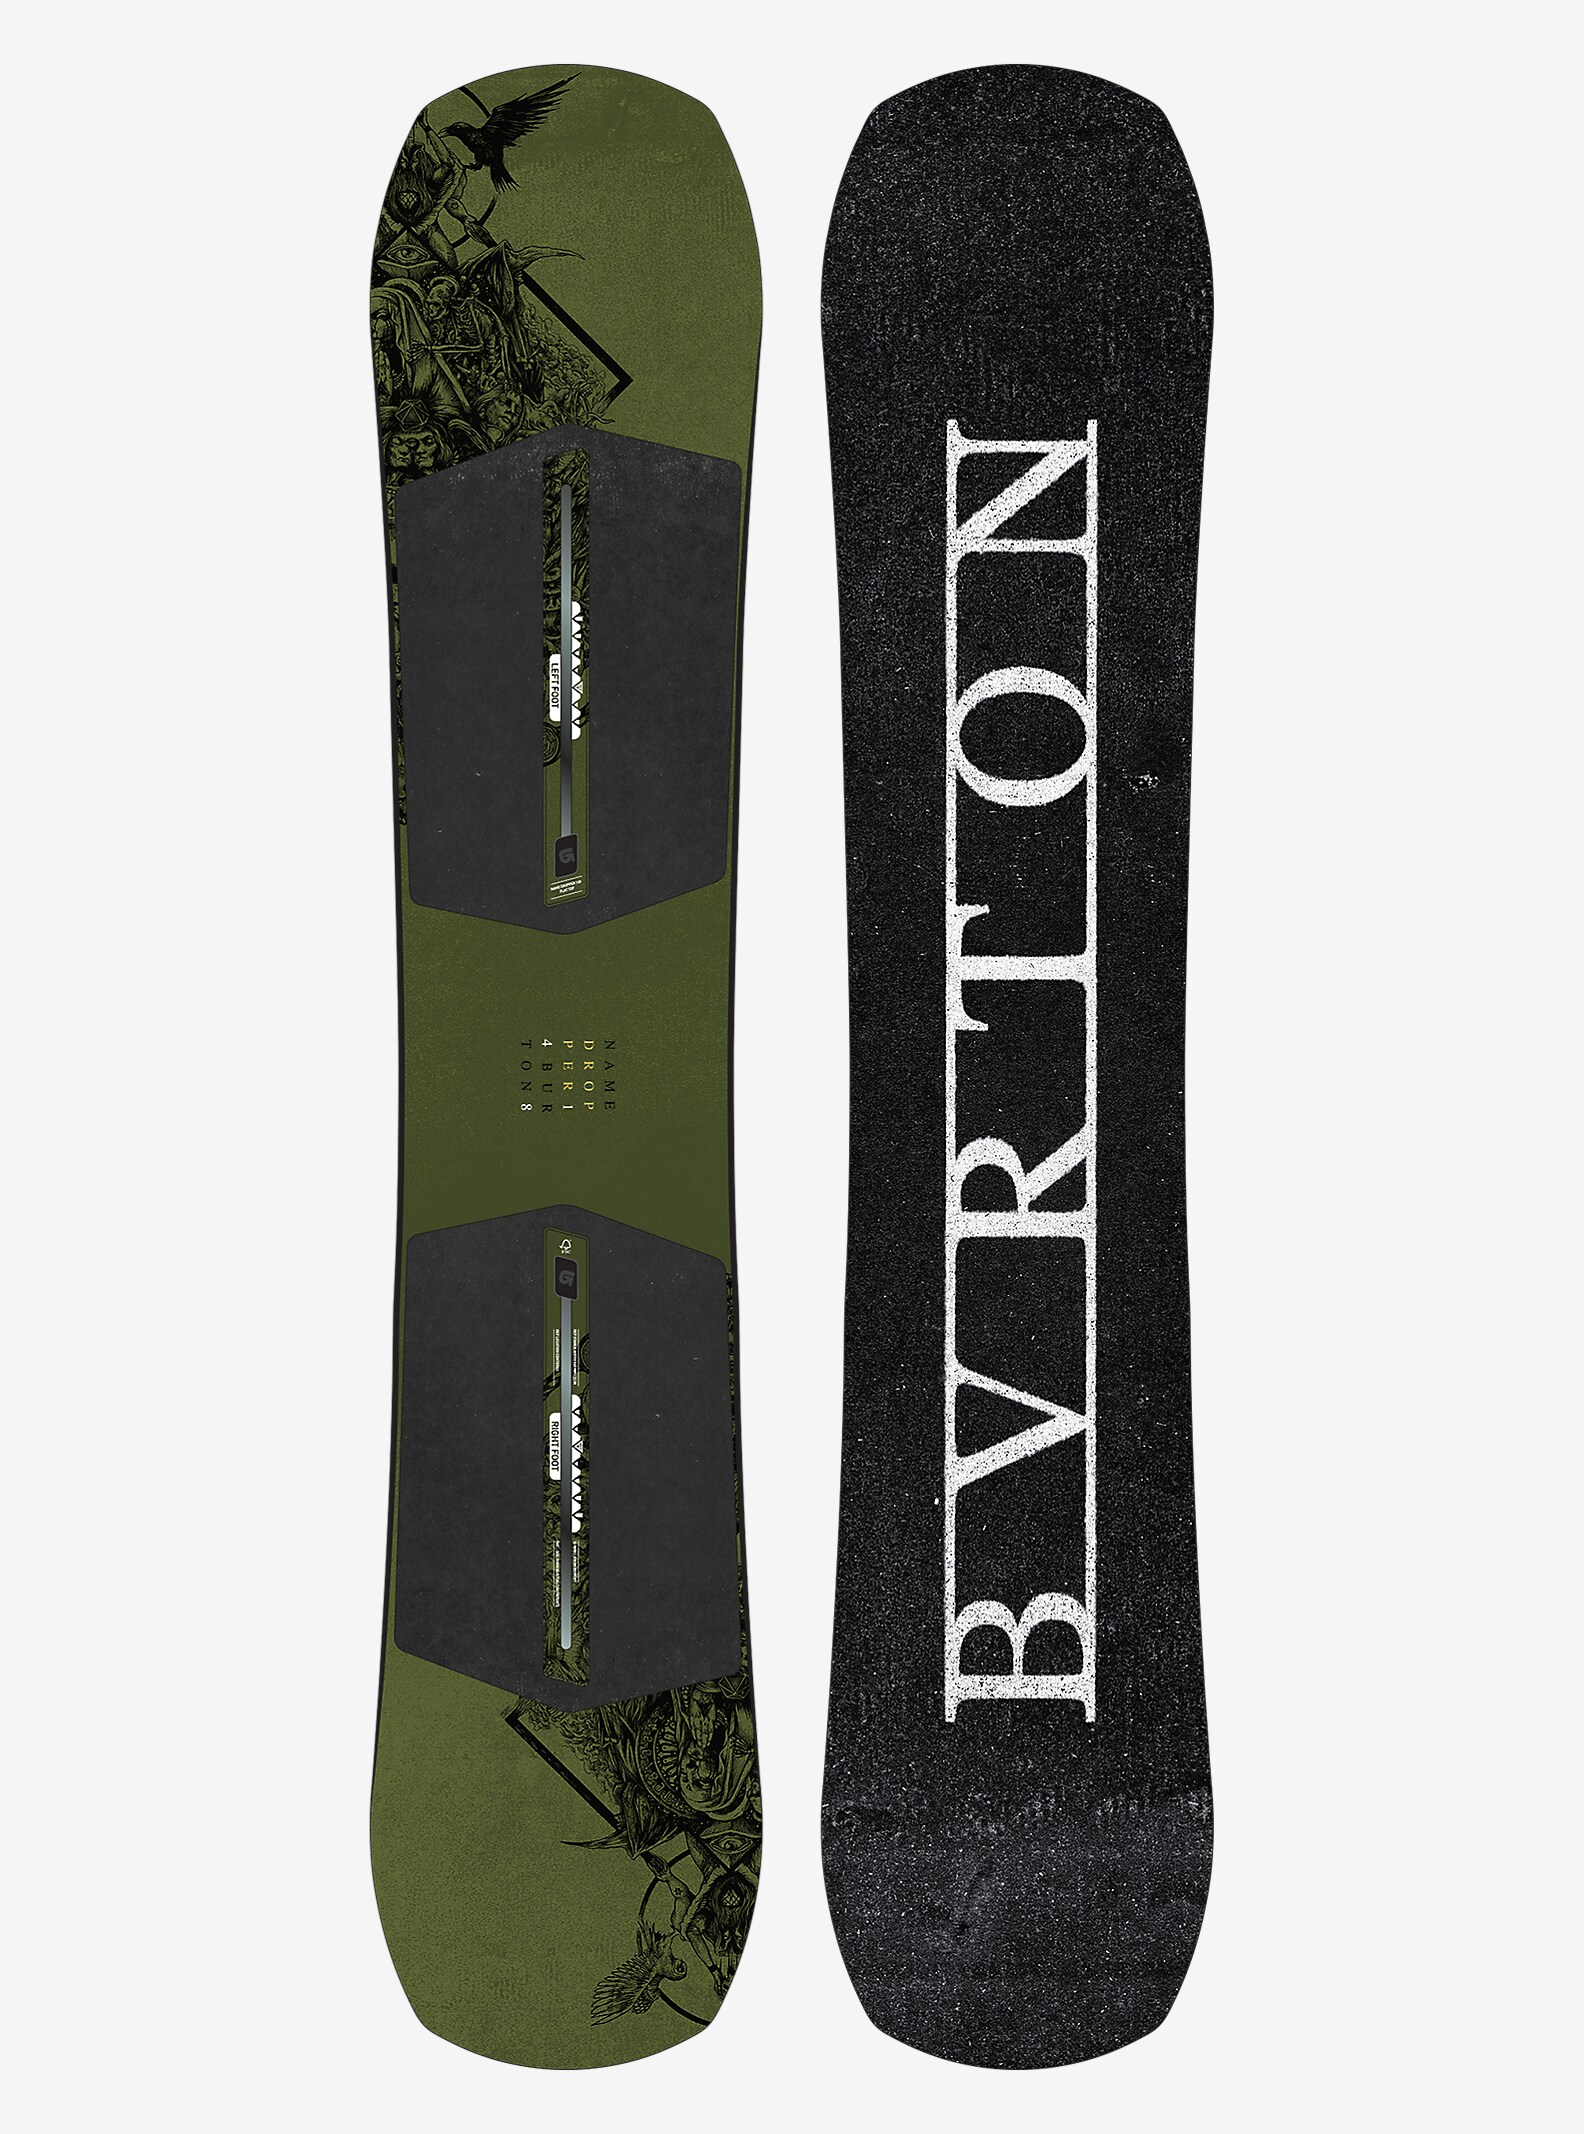 Burton Name Dropper Snowboard shown in 148